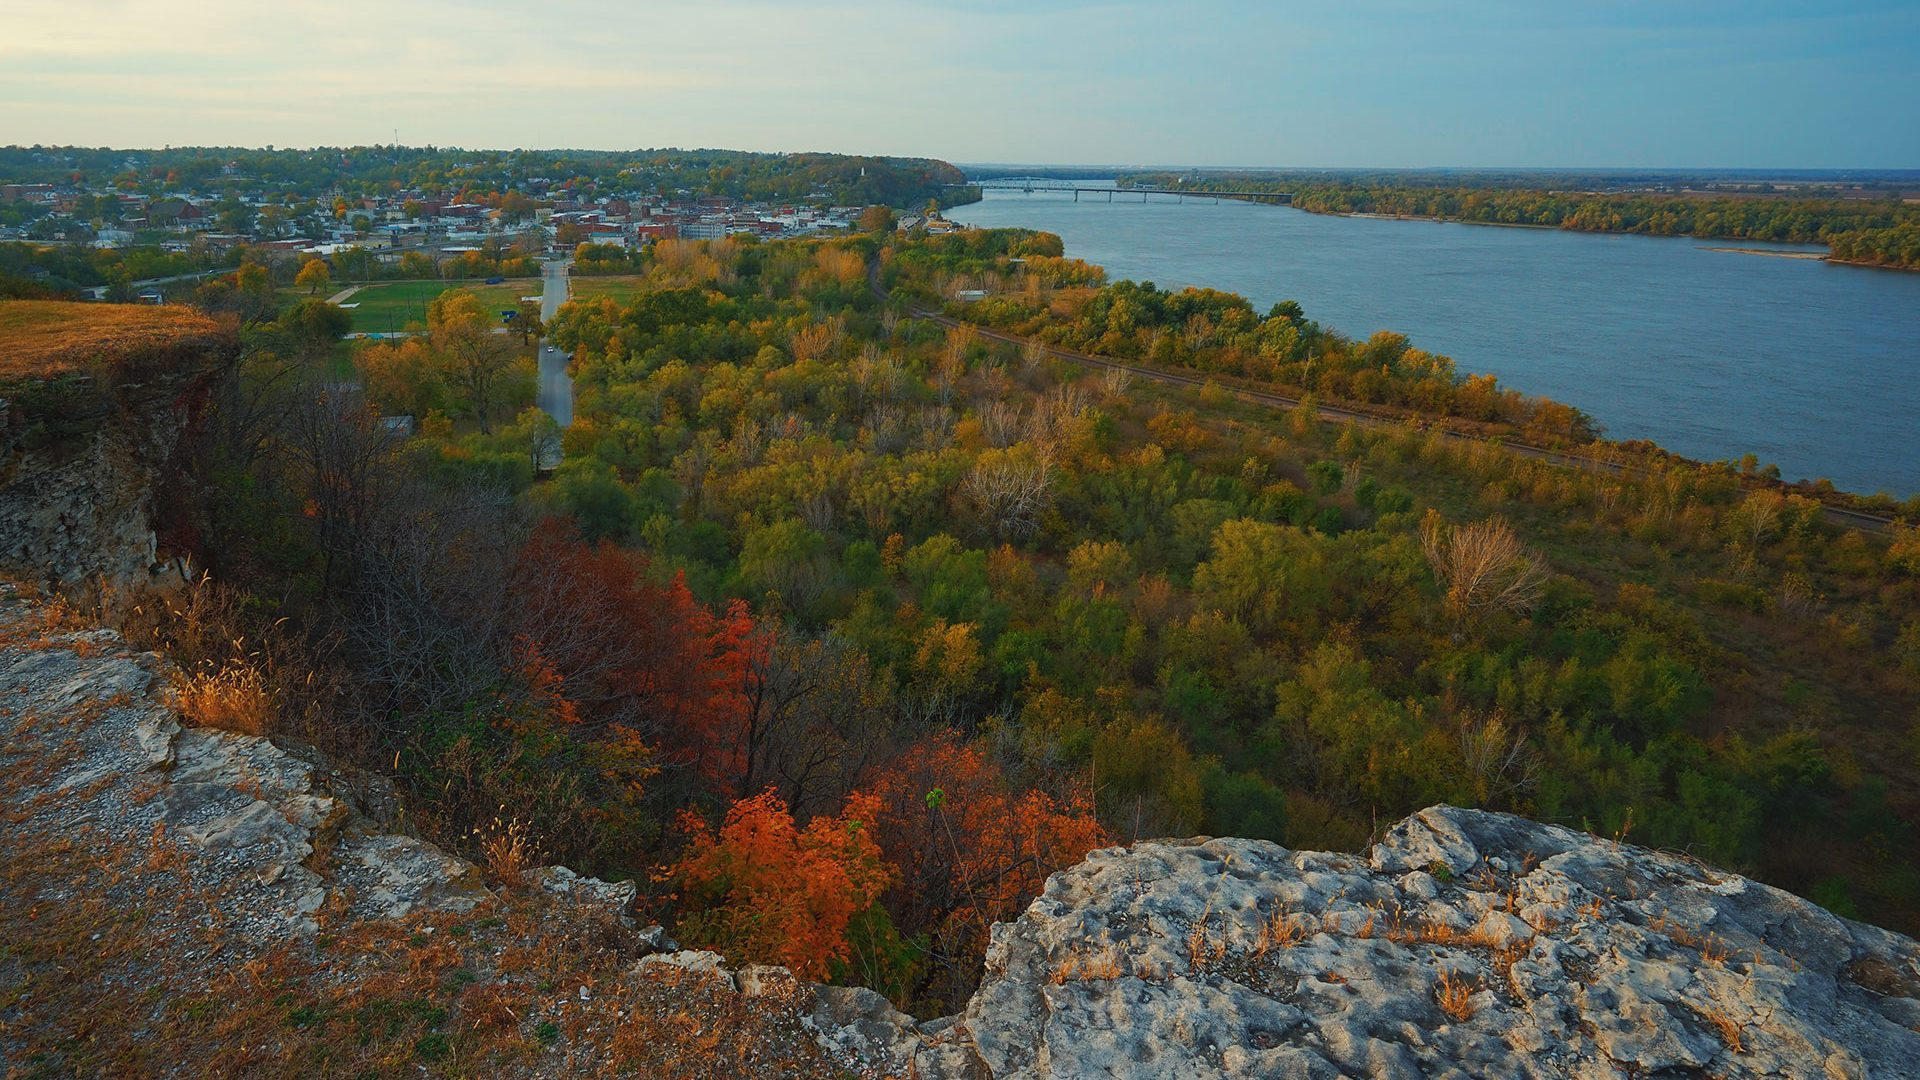 Lovers Leap in Hannibal, Missouri